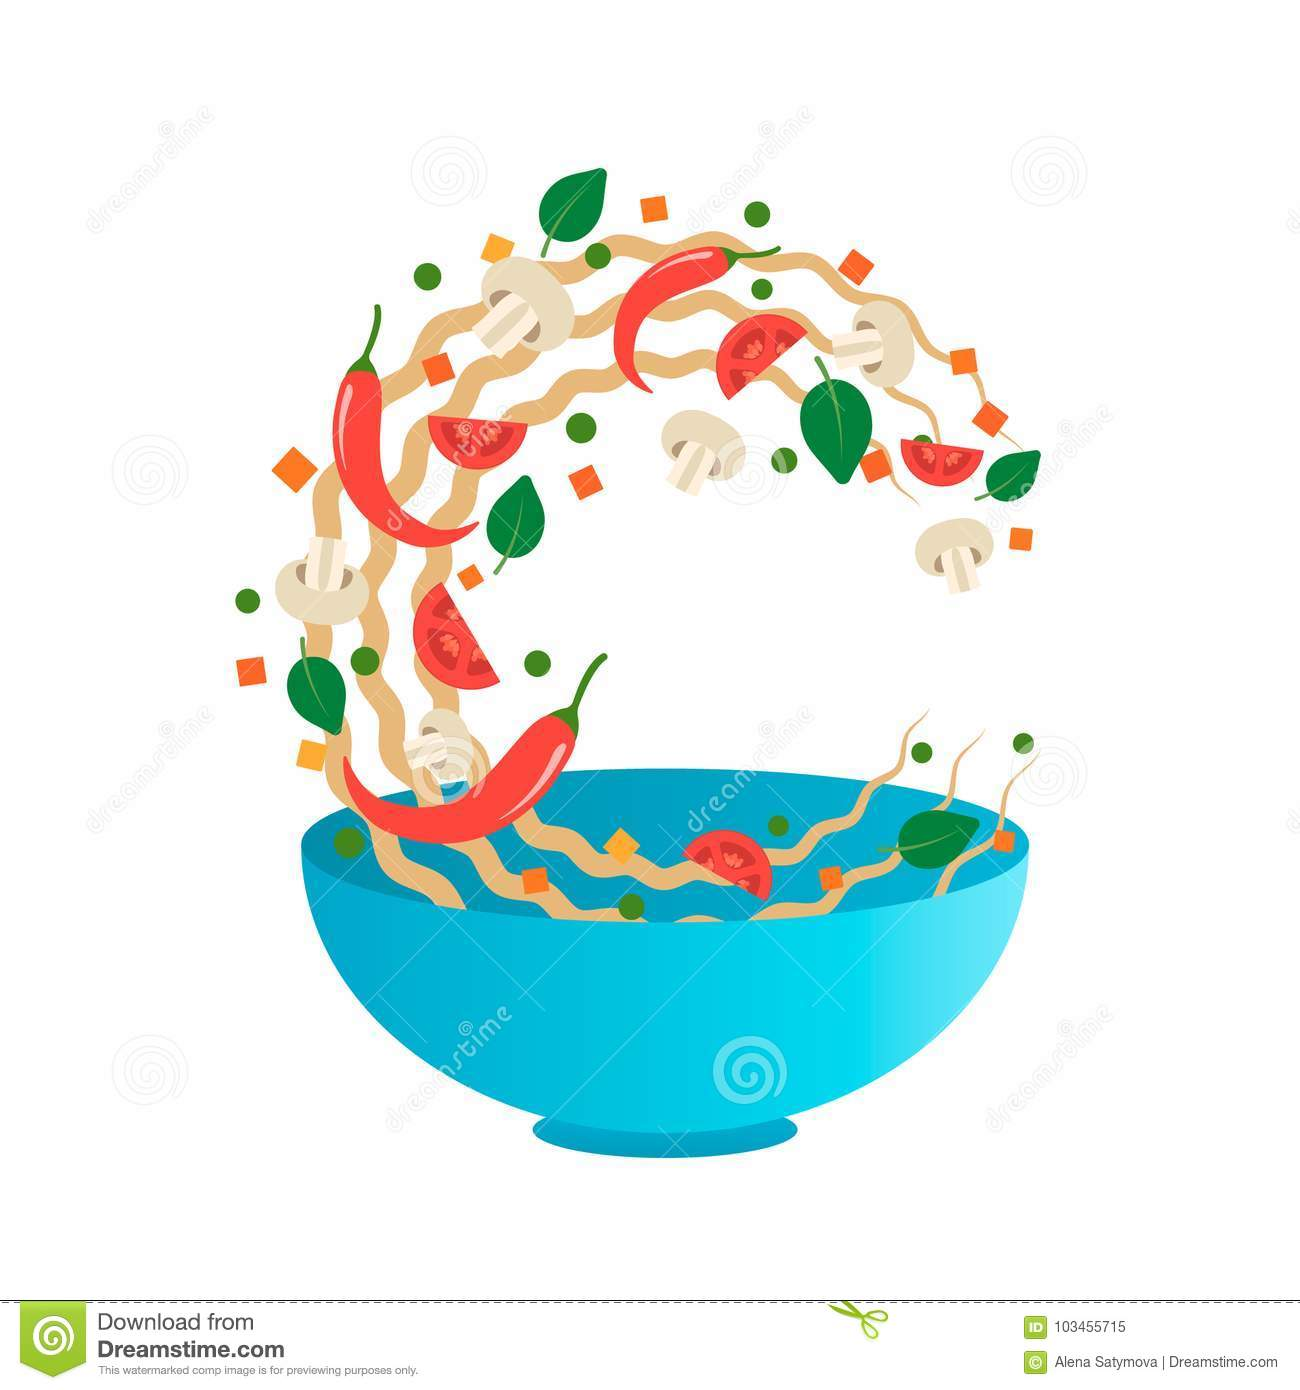 Stir fry vector illustration. Flipping Asian noodles with vegetables in a blue bowl. Cartoon style